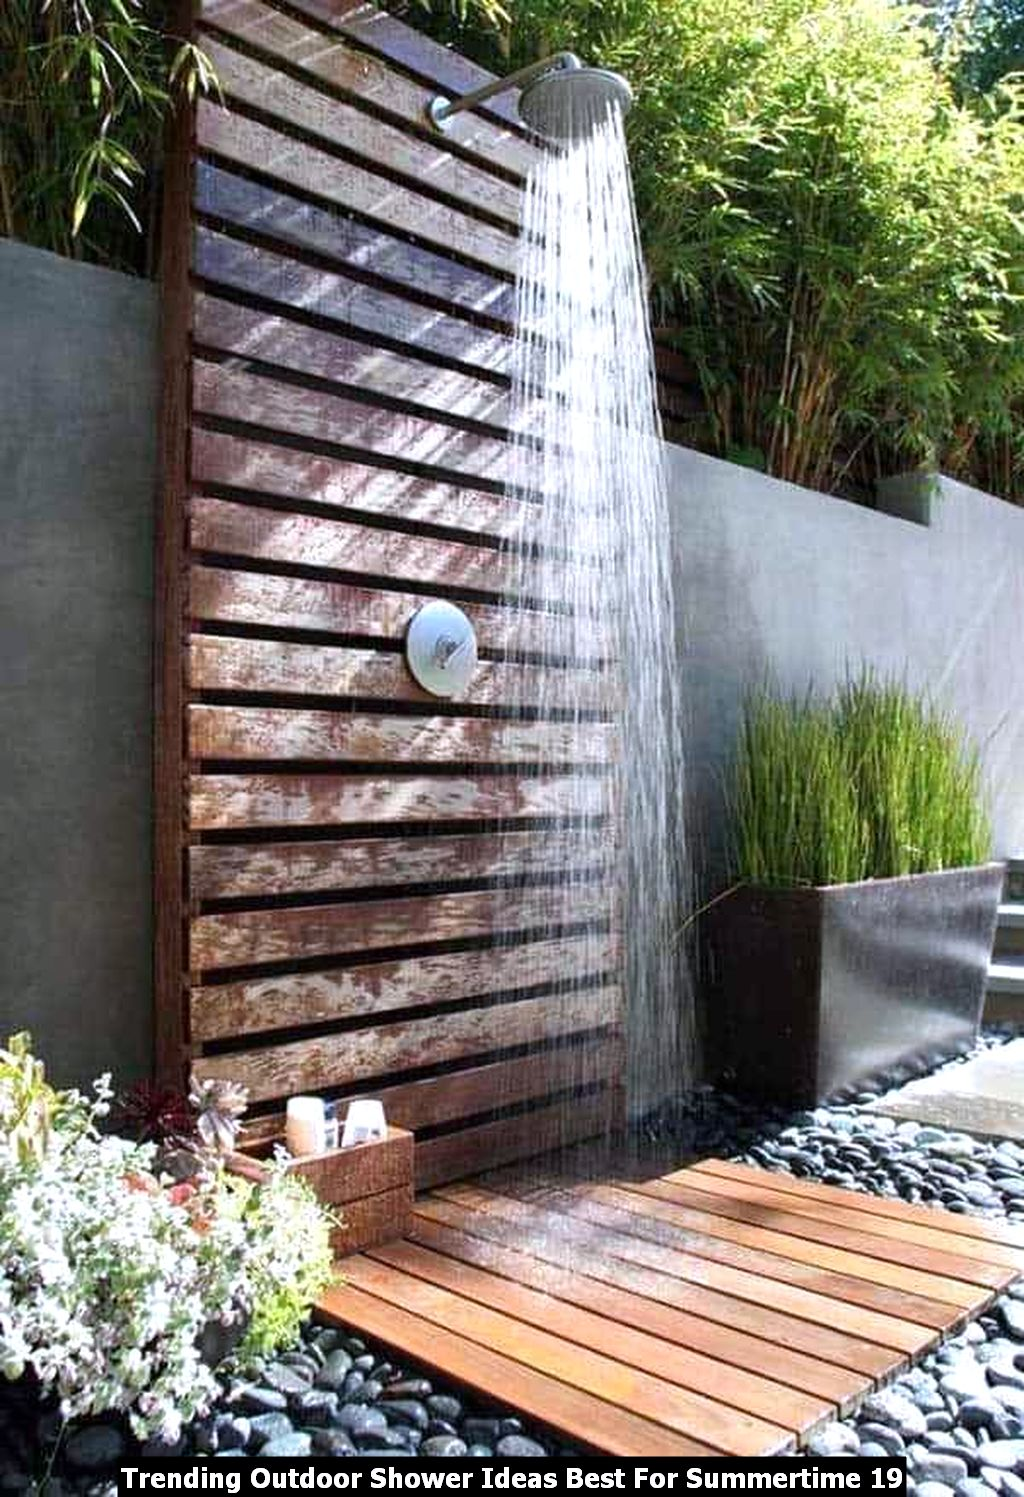 Trending Outdoor Shower Ideas Best For Summertime 19